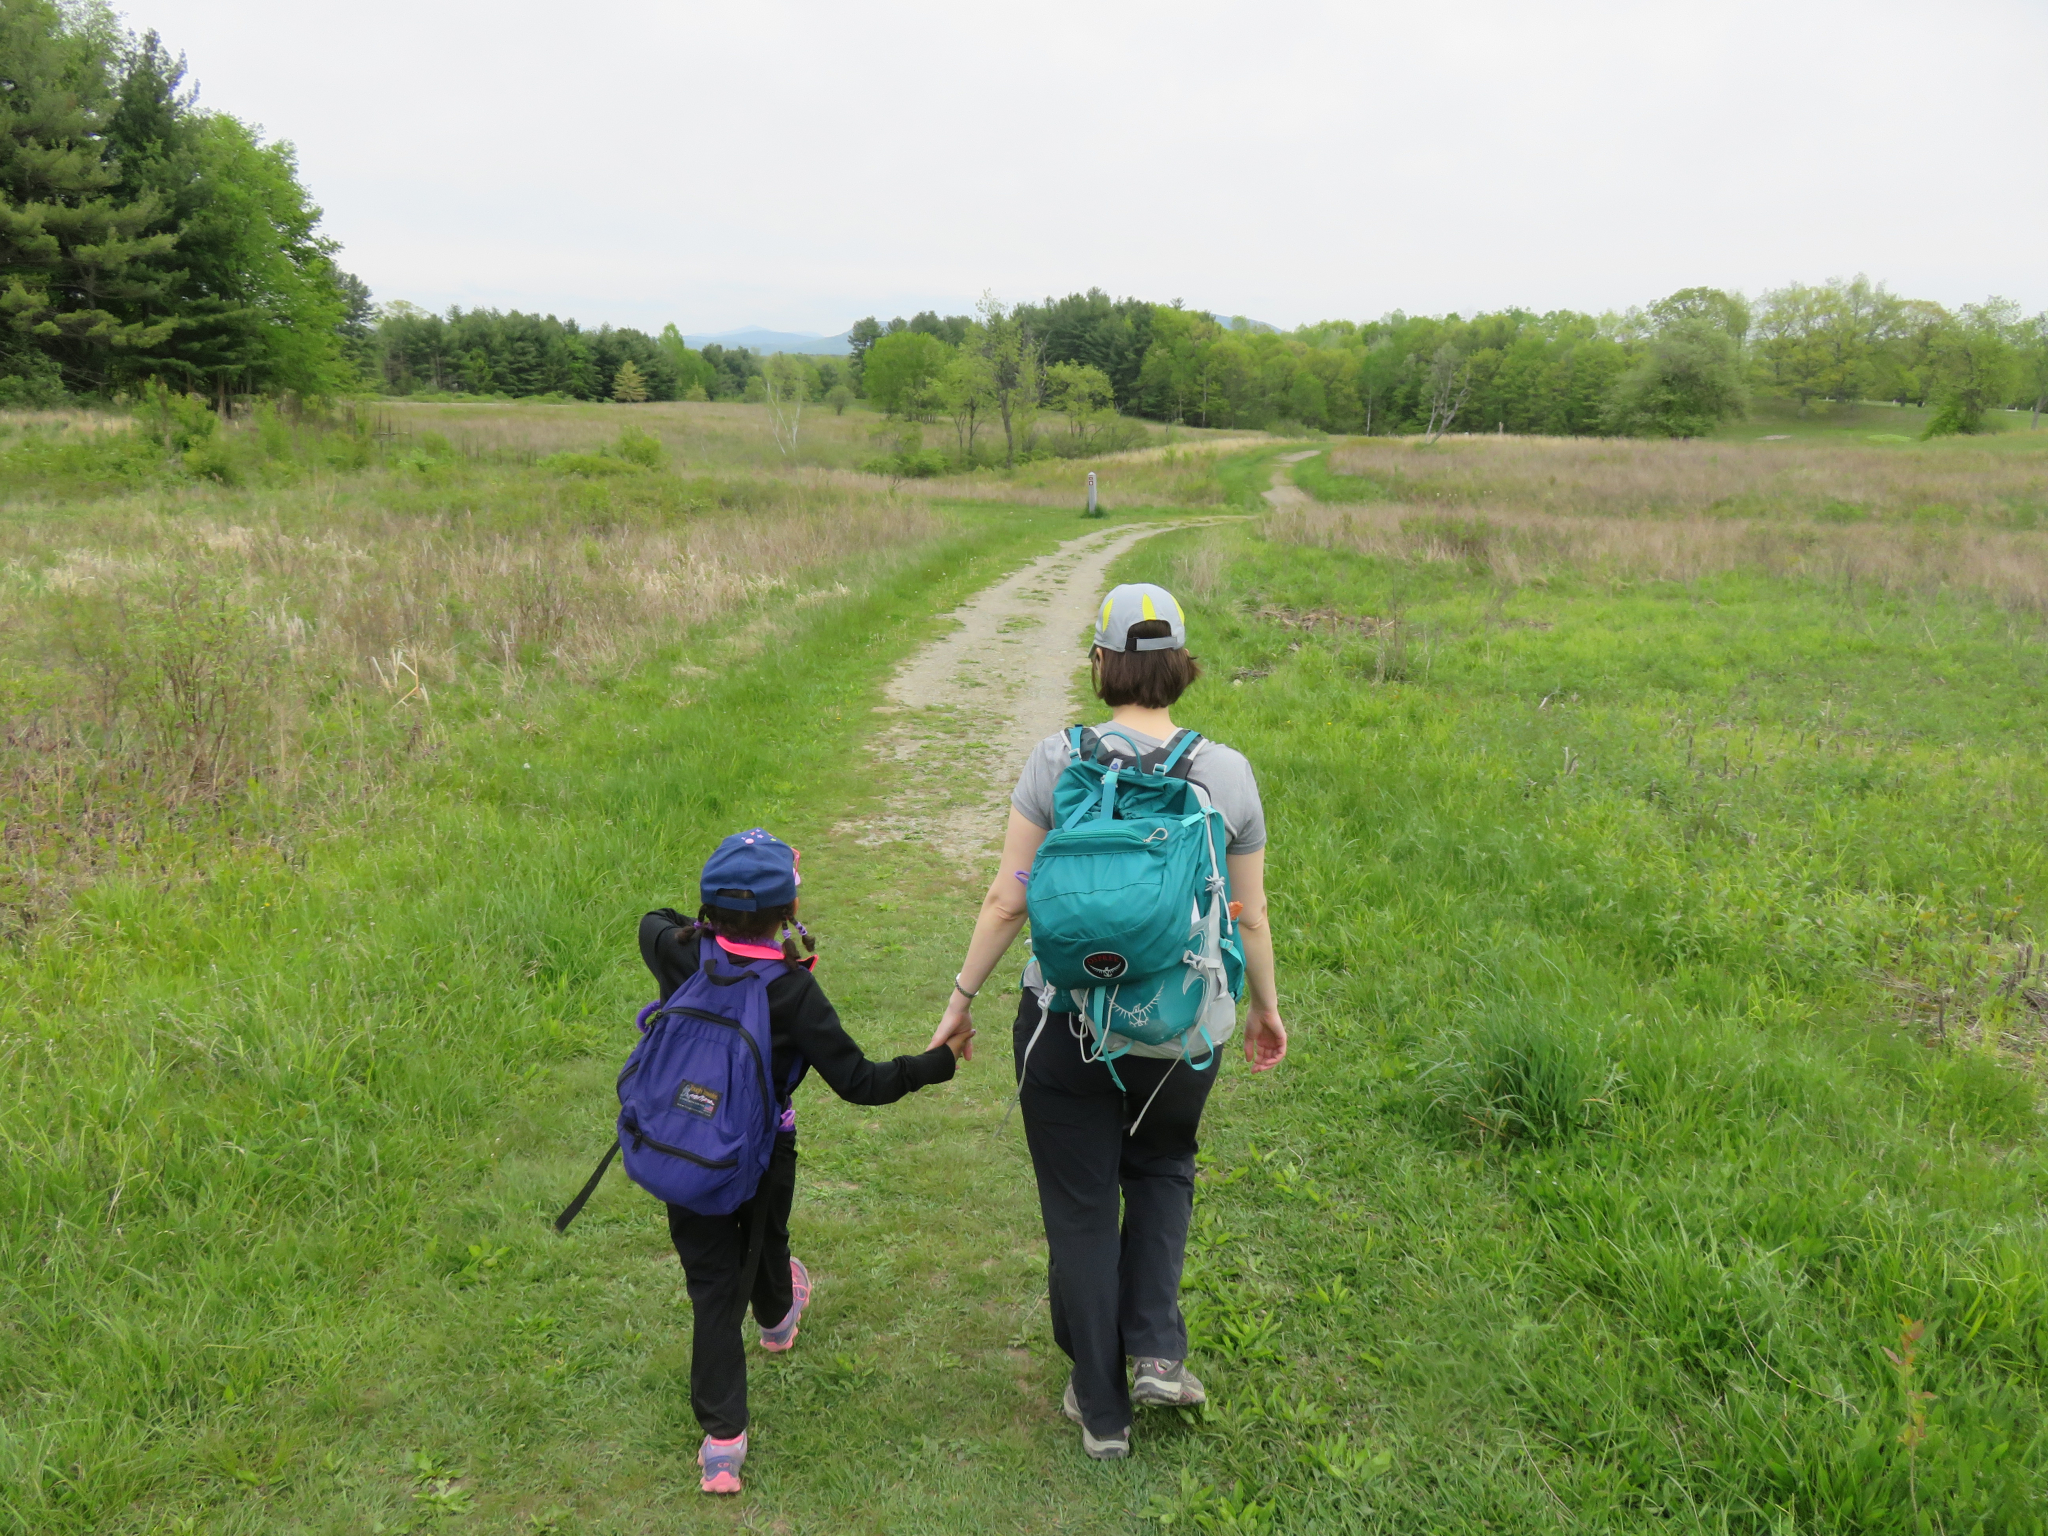 Outdoors: On the hike of life, a new adventure - Times Union